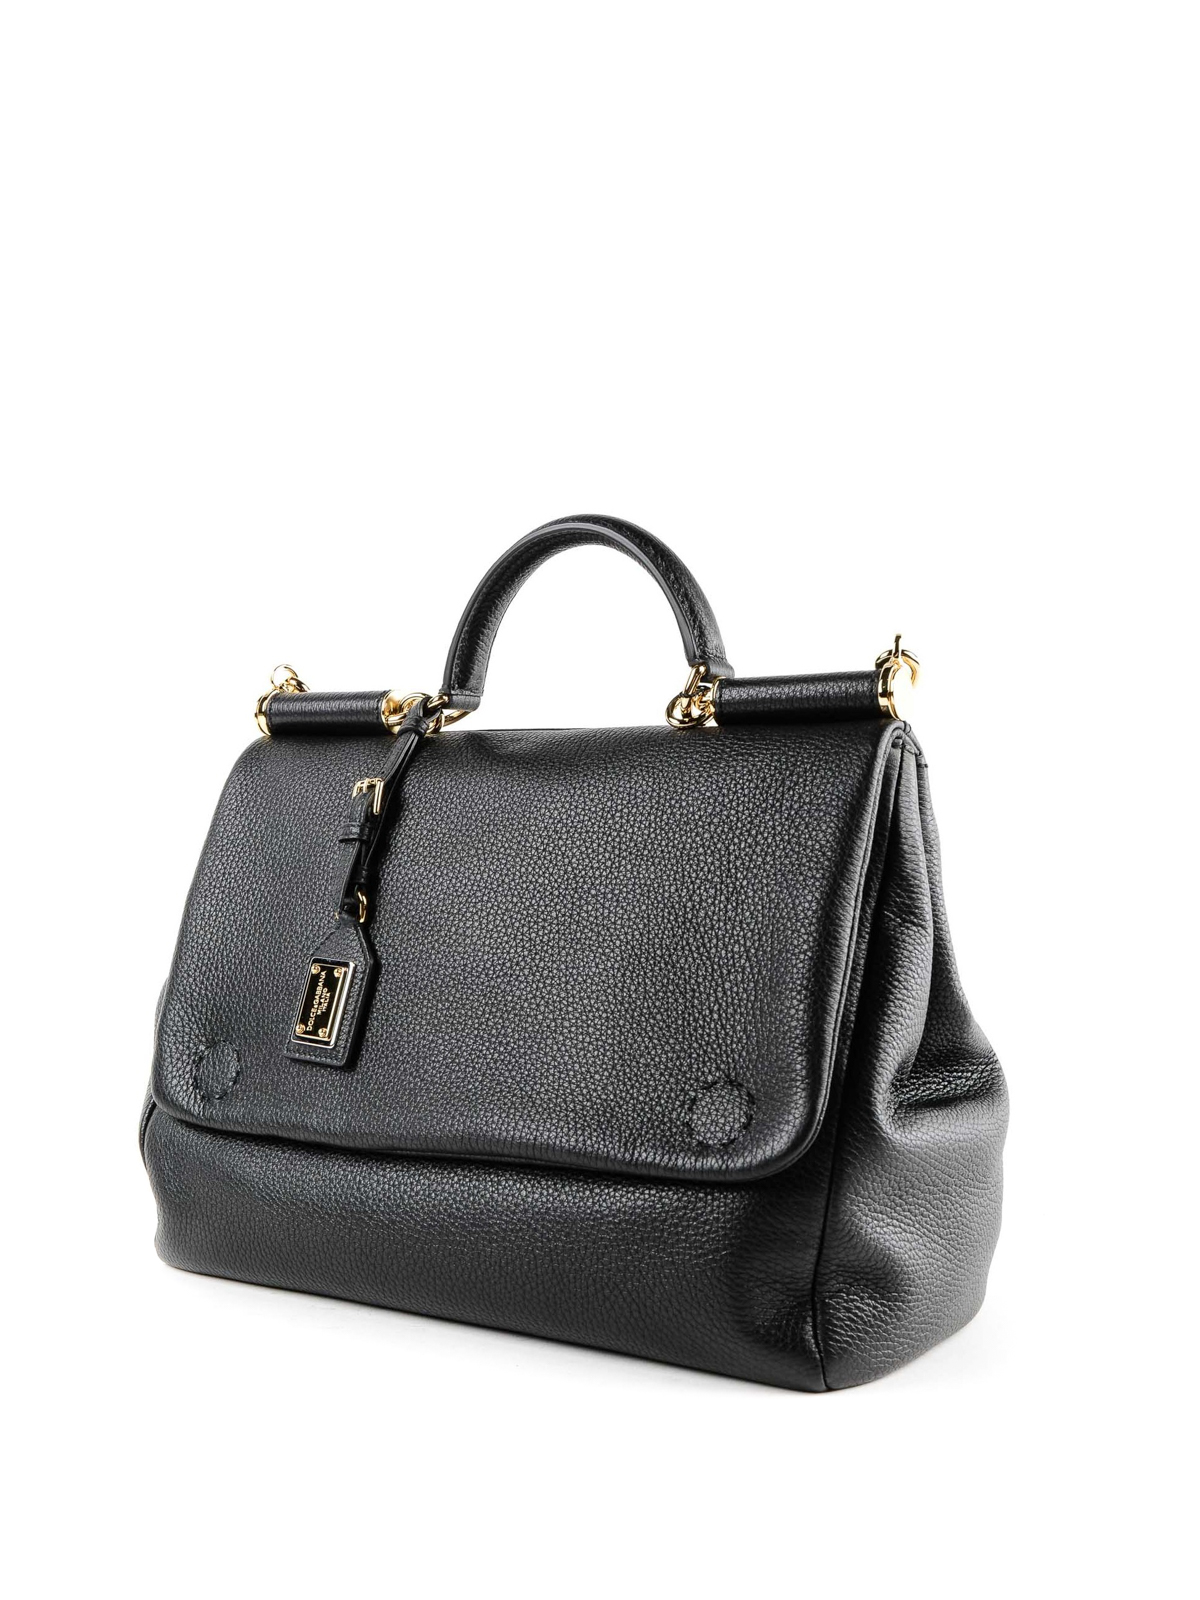 1c34aa6ca3 DOLCE   GABBANA  shoulder bags online - Sicily black grained leather bag